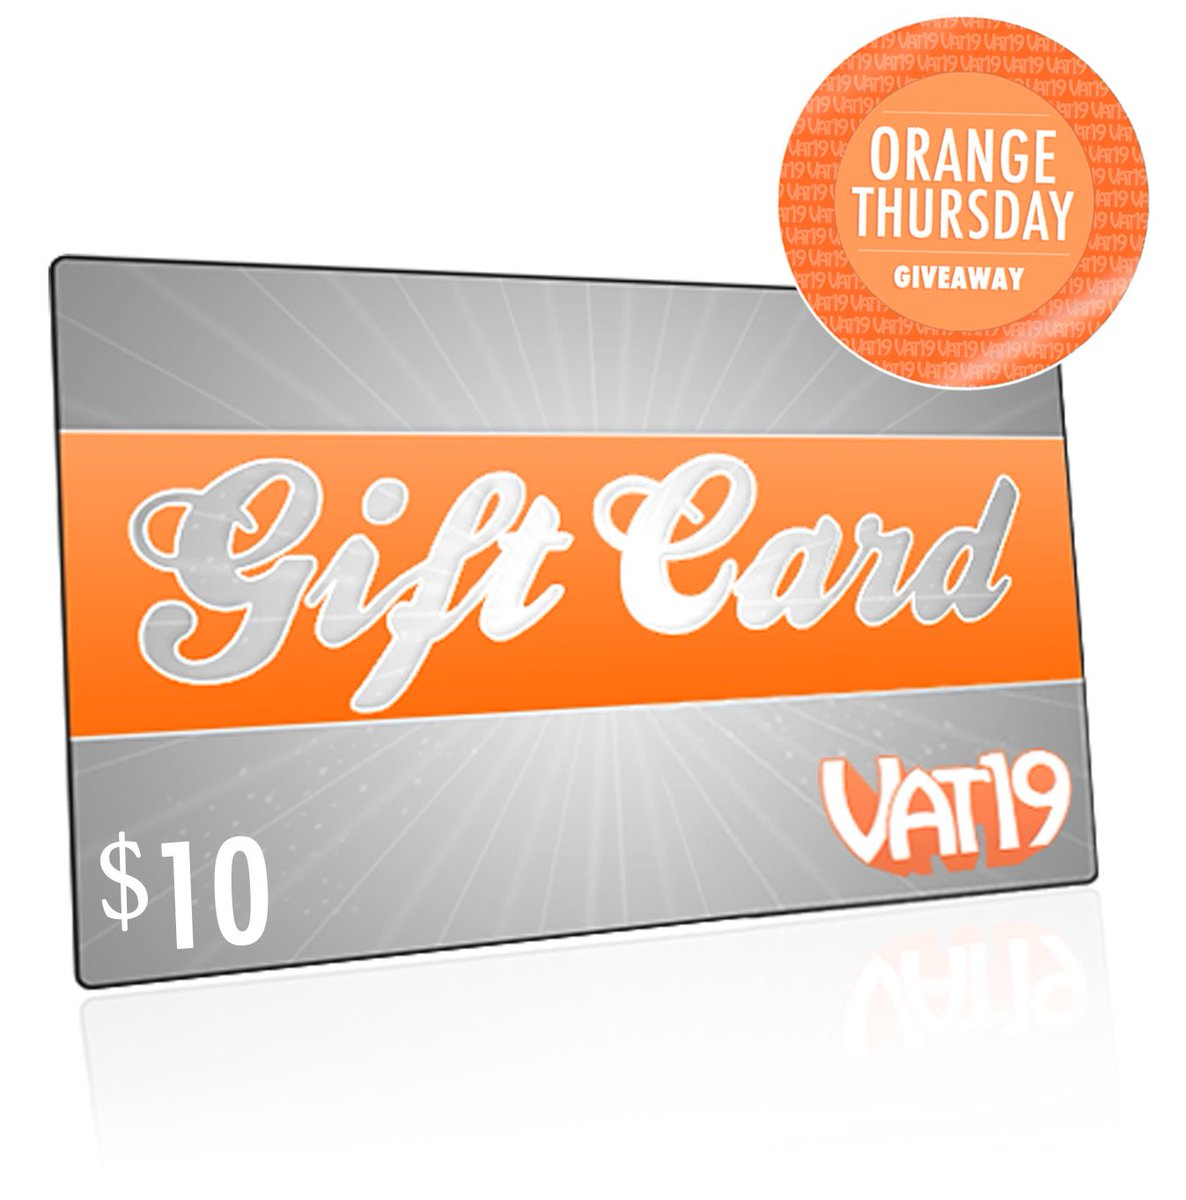 The next hour only: Win a $10 Gift Card for #OrangeThursday! To enter, like and RT this post! (Open internationally) https://t.co/utIT0GN5Qz